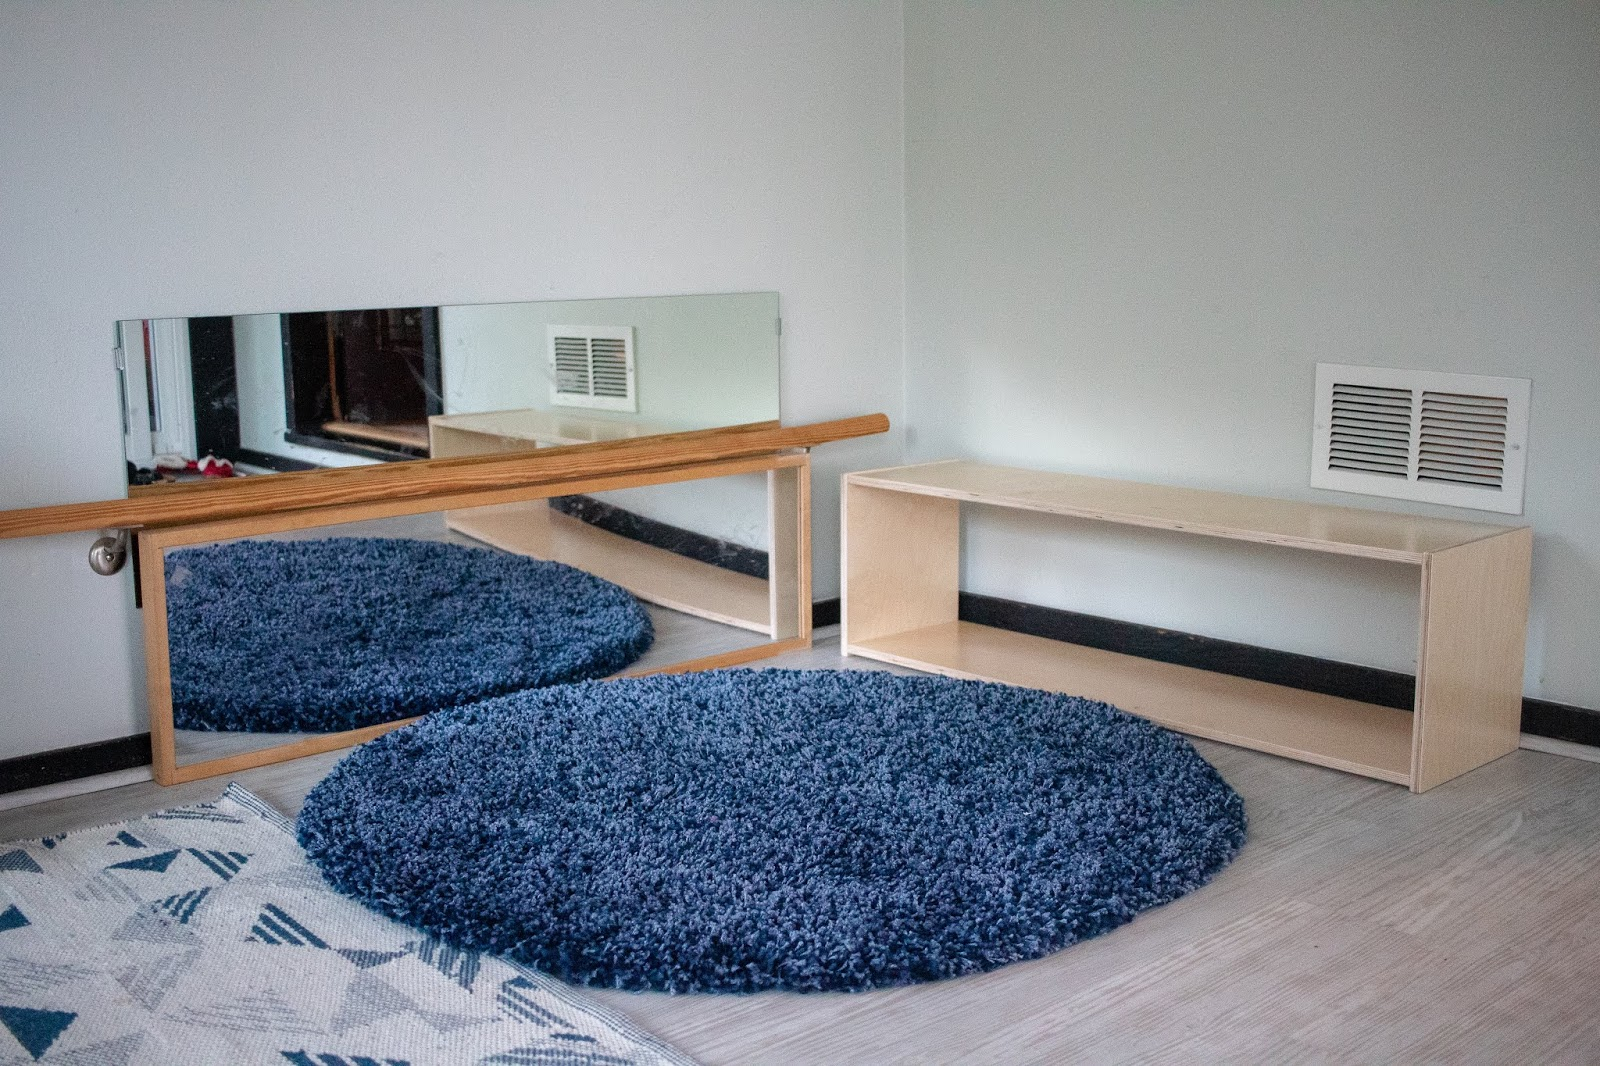 A comprehensive look at the similarities and differences between a Montessori infant sleep space and a Montessori movement area.